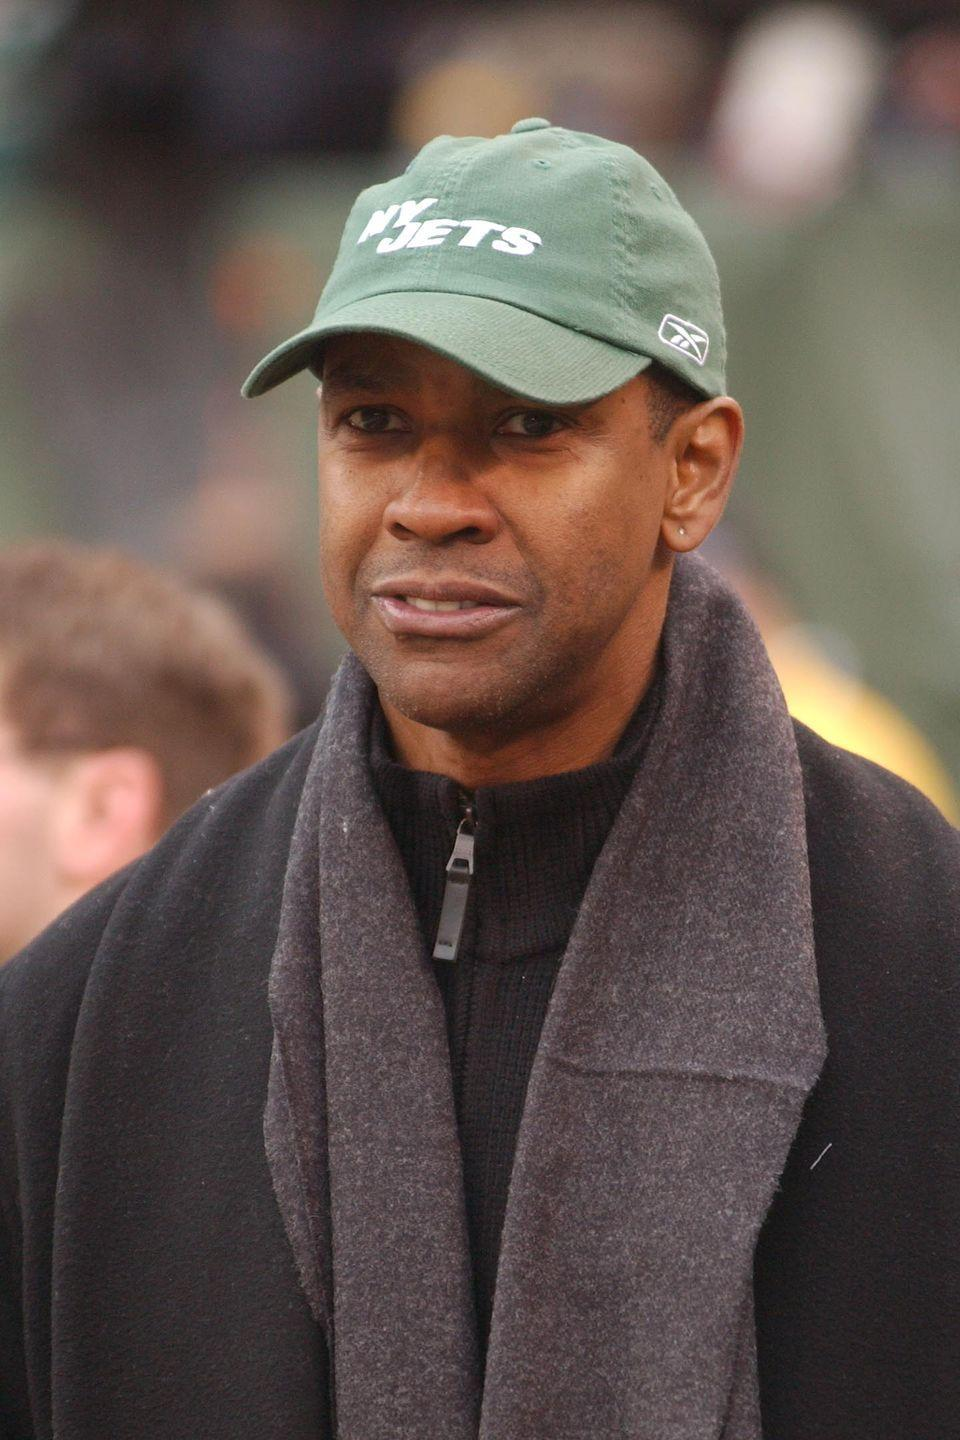 """<p>Before heading to Hollywood, Denzel Washington attended Fordham University in New York. While he was studying there, he also earned a spot on the <a href=""""https://www.cbssports.com/nba/news/ray-allen-admits-denzel-washington-wasnt-supposed-to-score-on-him-in-he-got-game/"""" rel=""""nofollow noopener"""" target=""""_blank"""" data-ylk=""""slk:junior varsity basketball team"""" class=""""link rapid-noclick-resp"""">junior varsity basketball team</a>. </p>"""